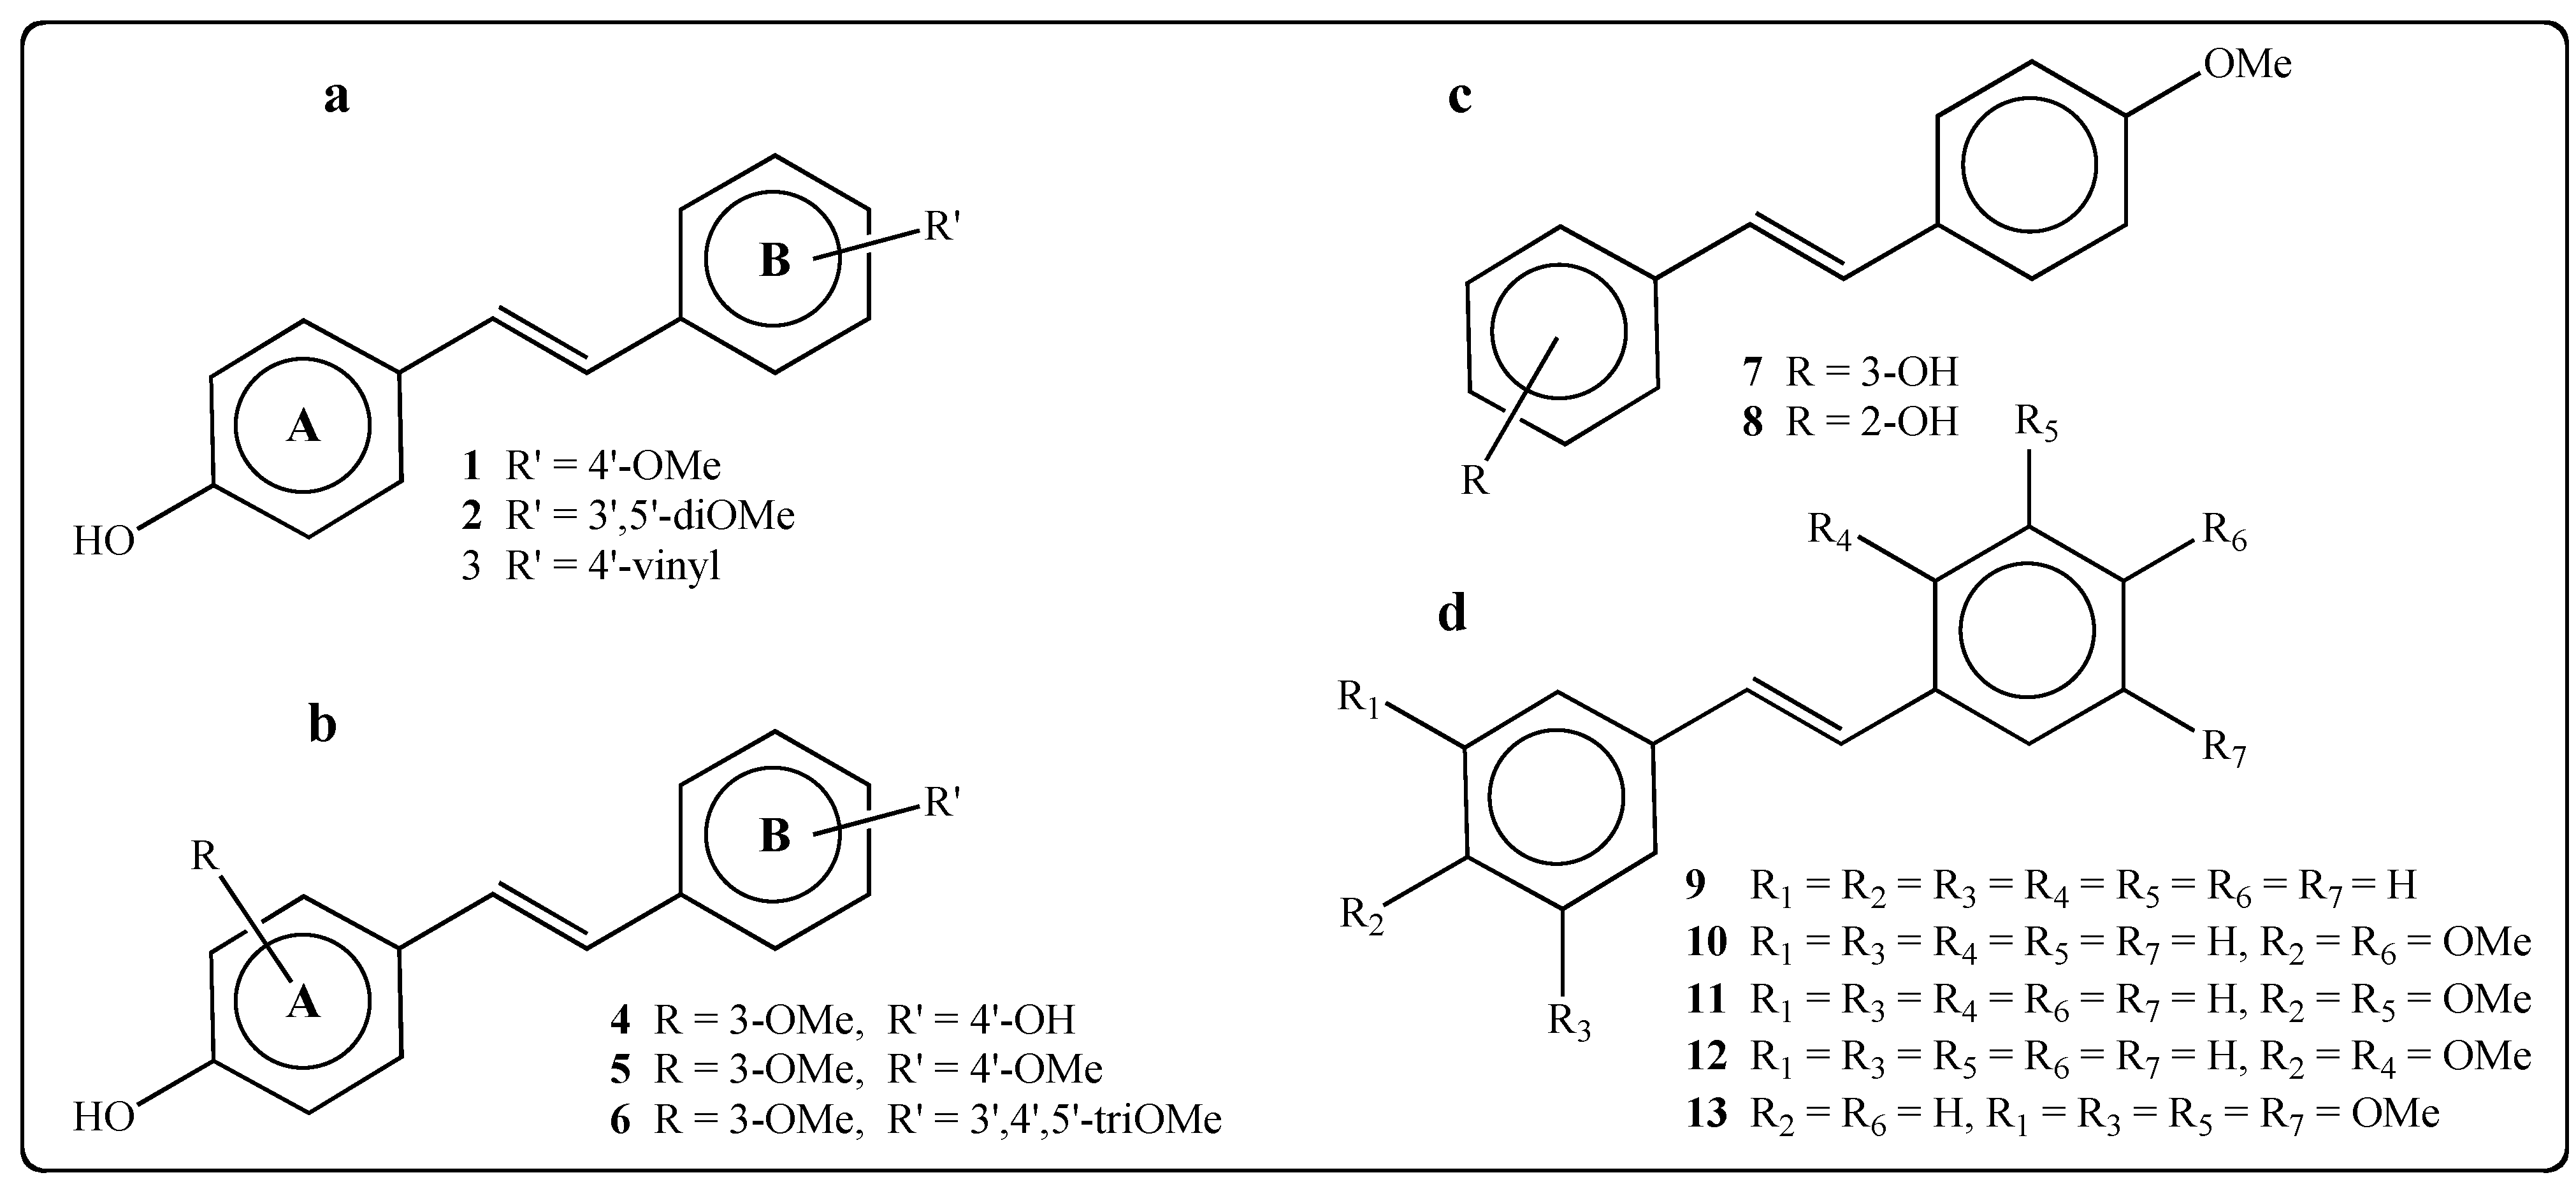 resveratrol and analogues structure activity relationship